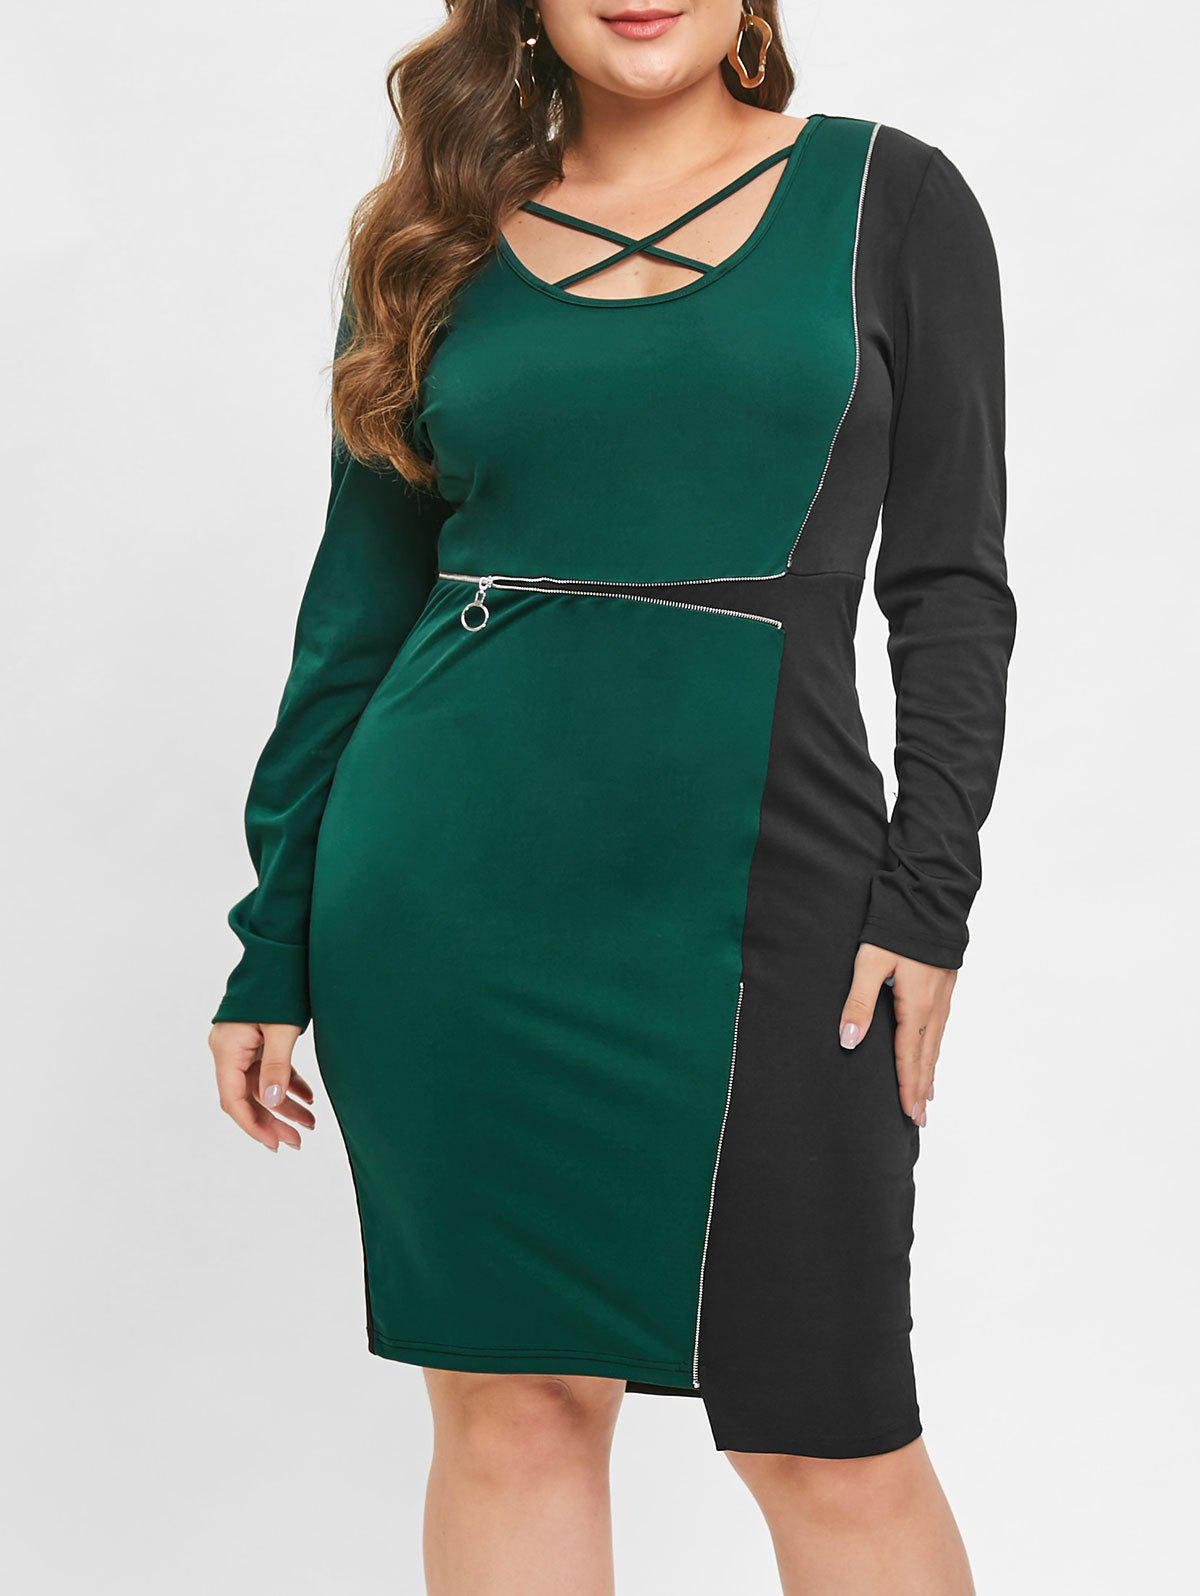 Criss Cross Two Tone Zippered Bodycon Dress - MEDIUM SEA GREEN L